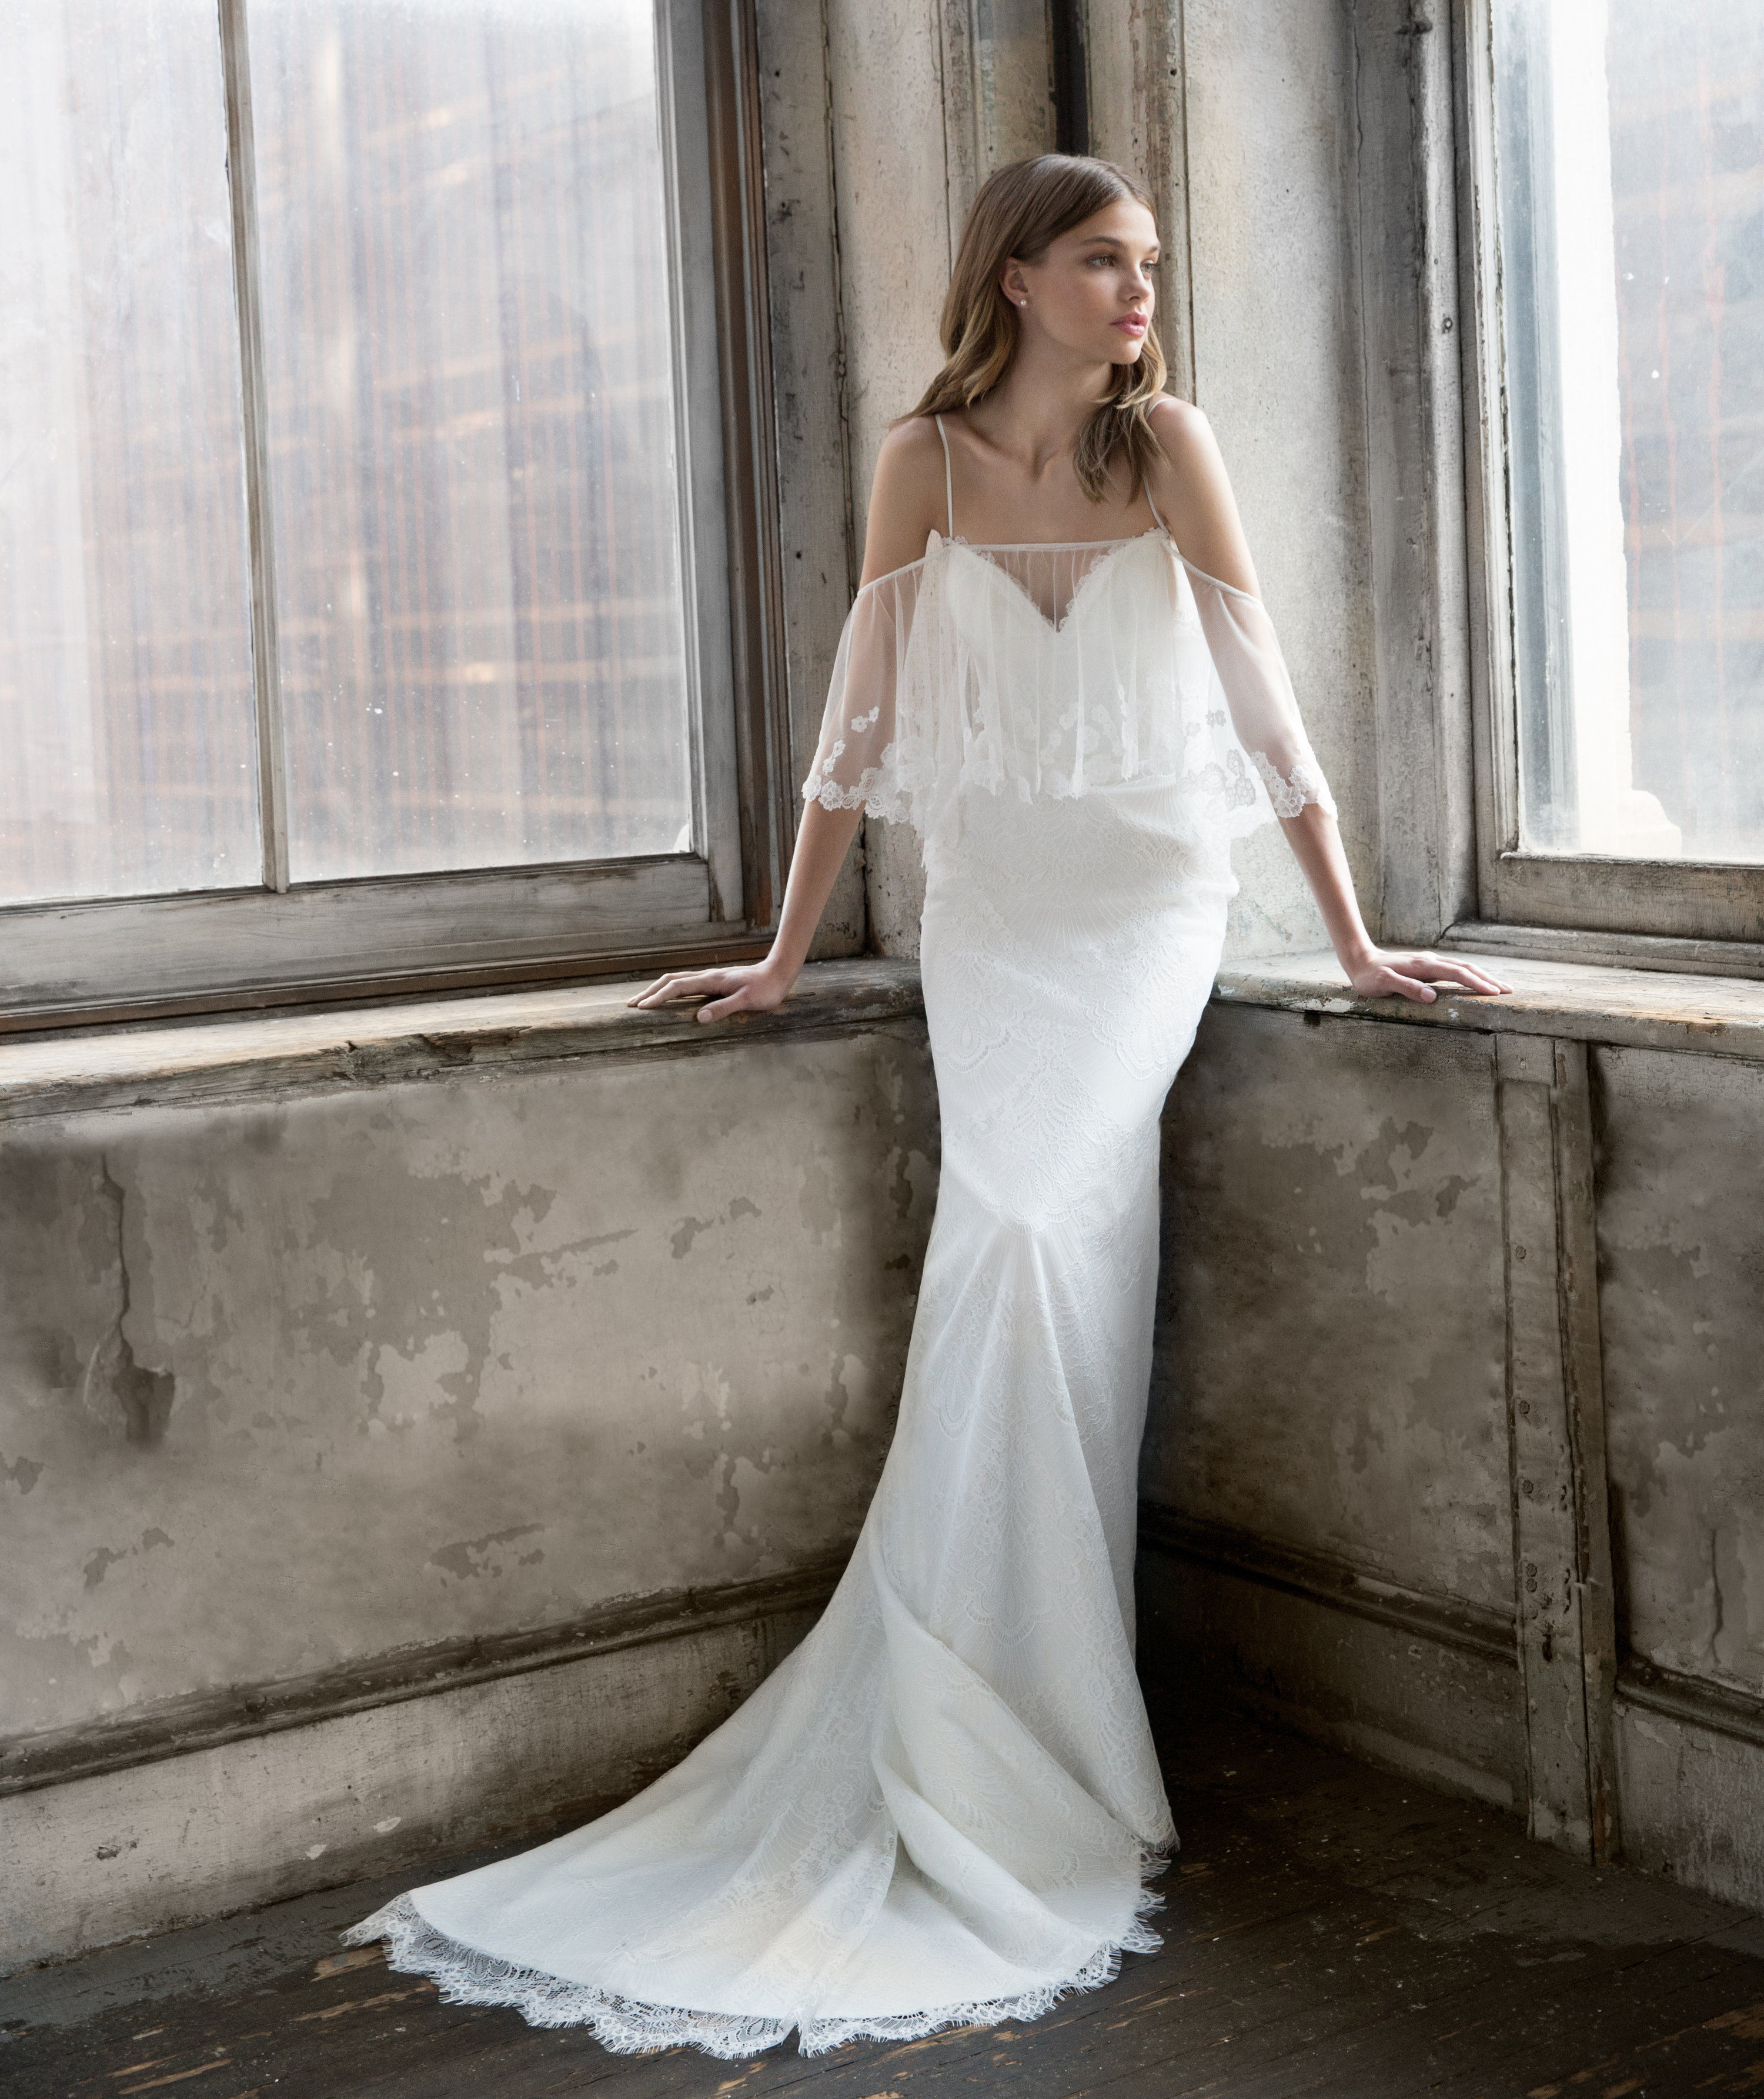 Bridal Gowns And Wedding Dresses By Jlm Couture Style 7806 Gabby